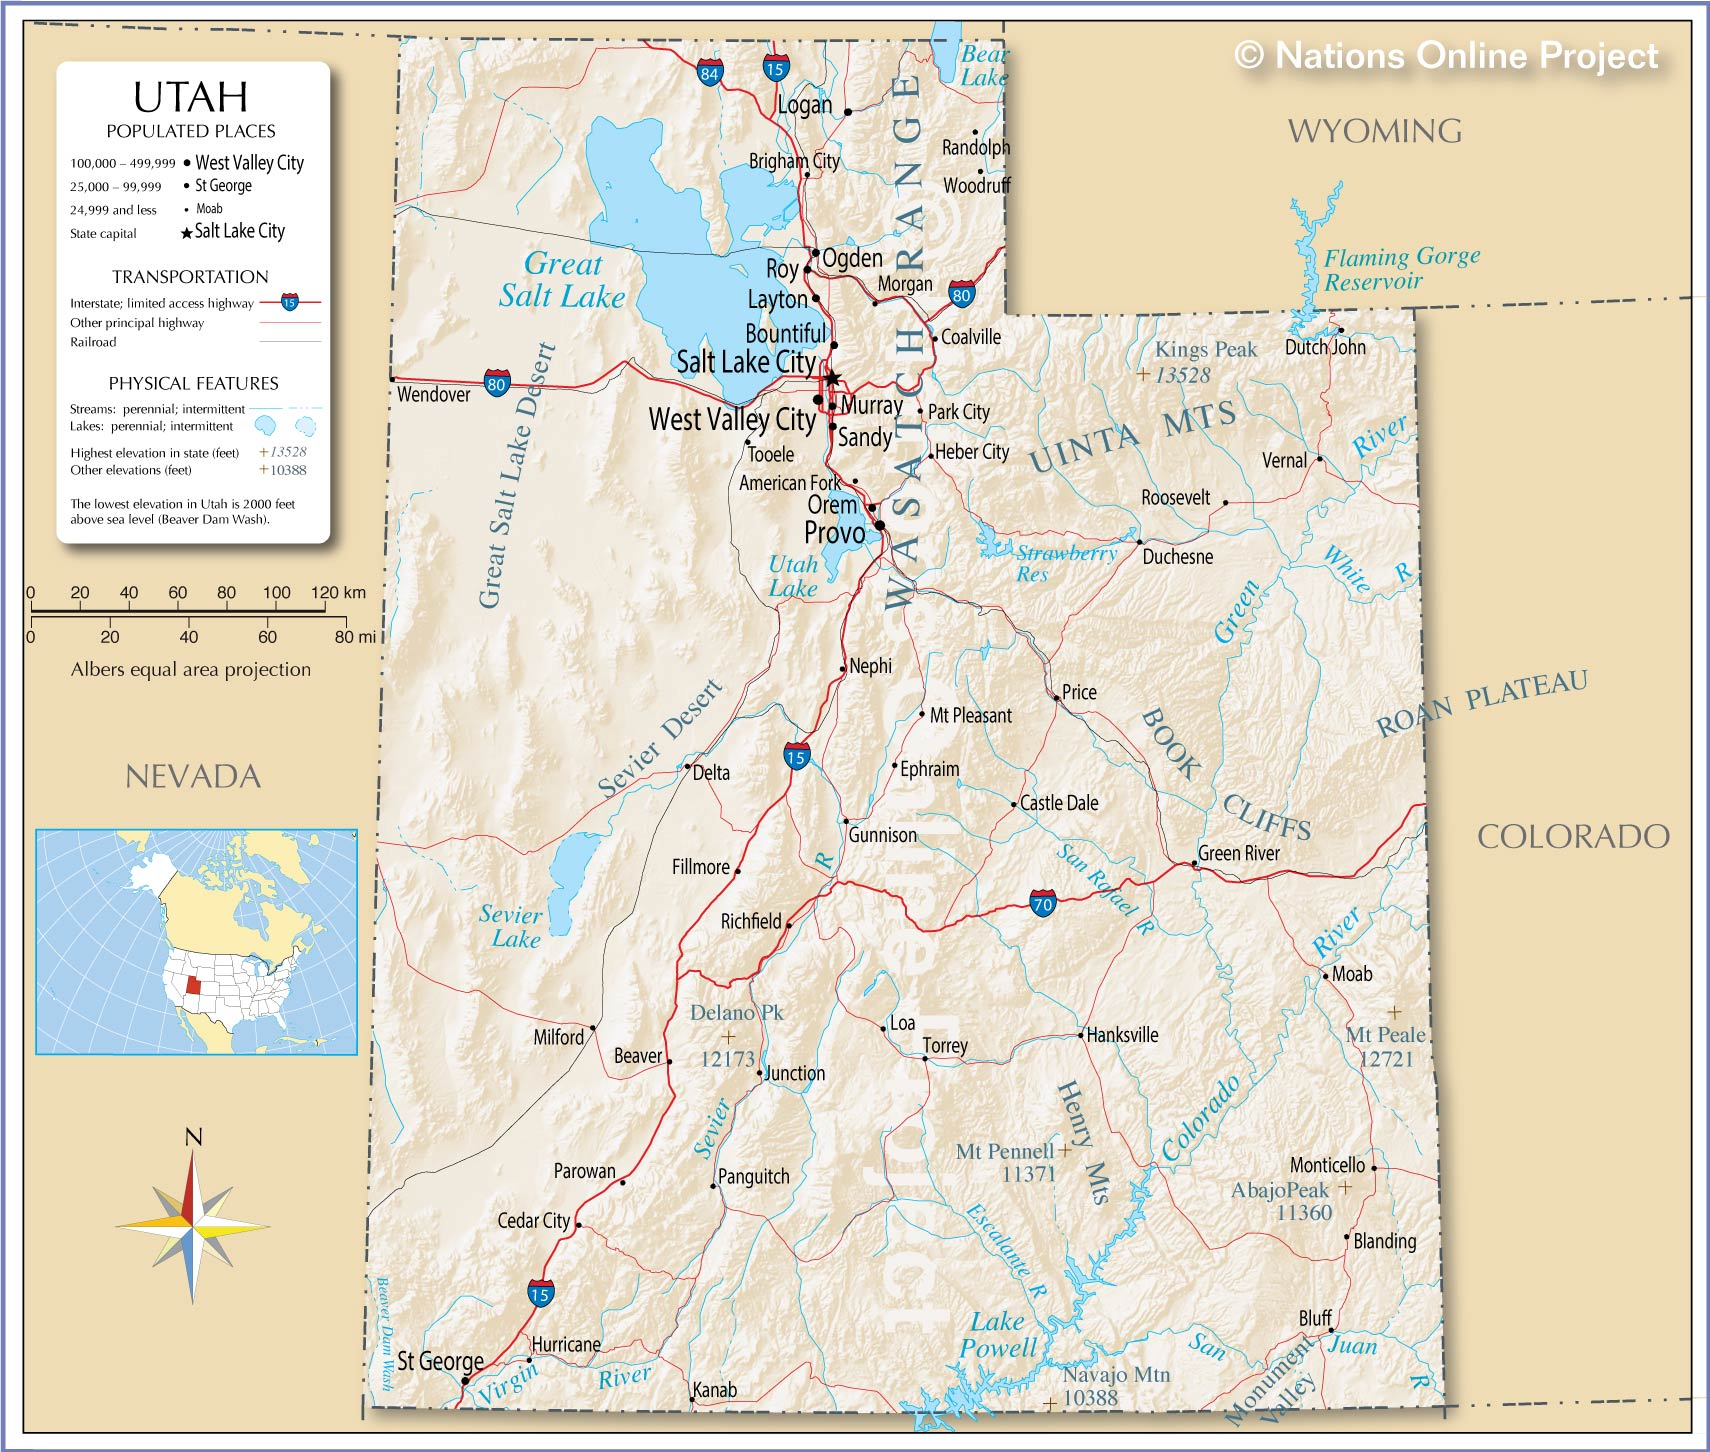 Reference Maps of Utah, USA - Nations Online Project